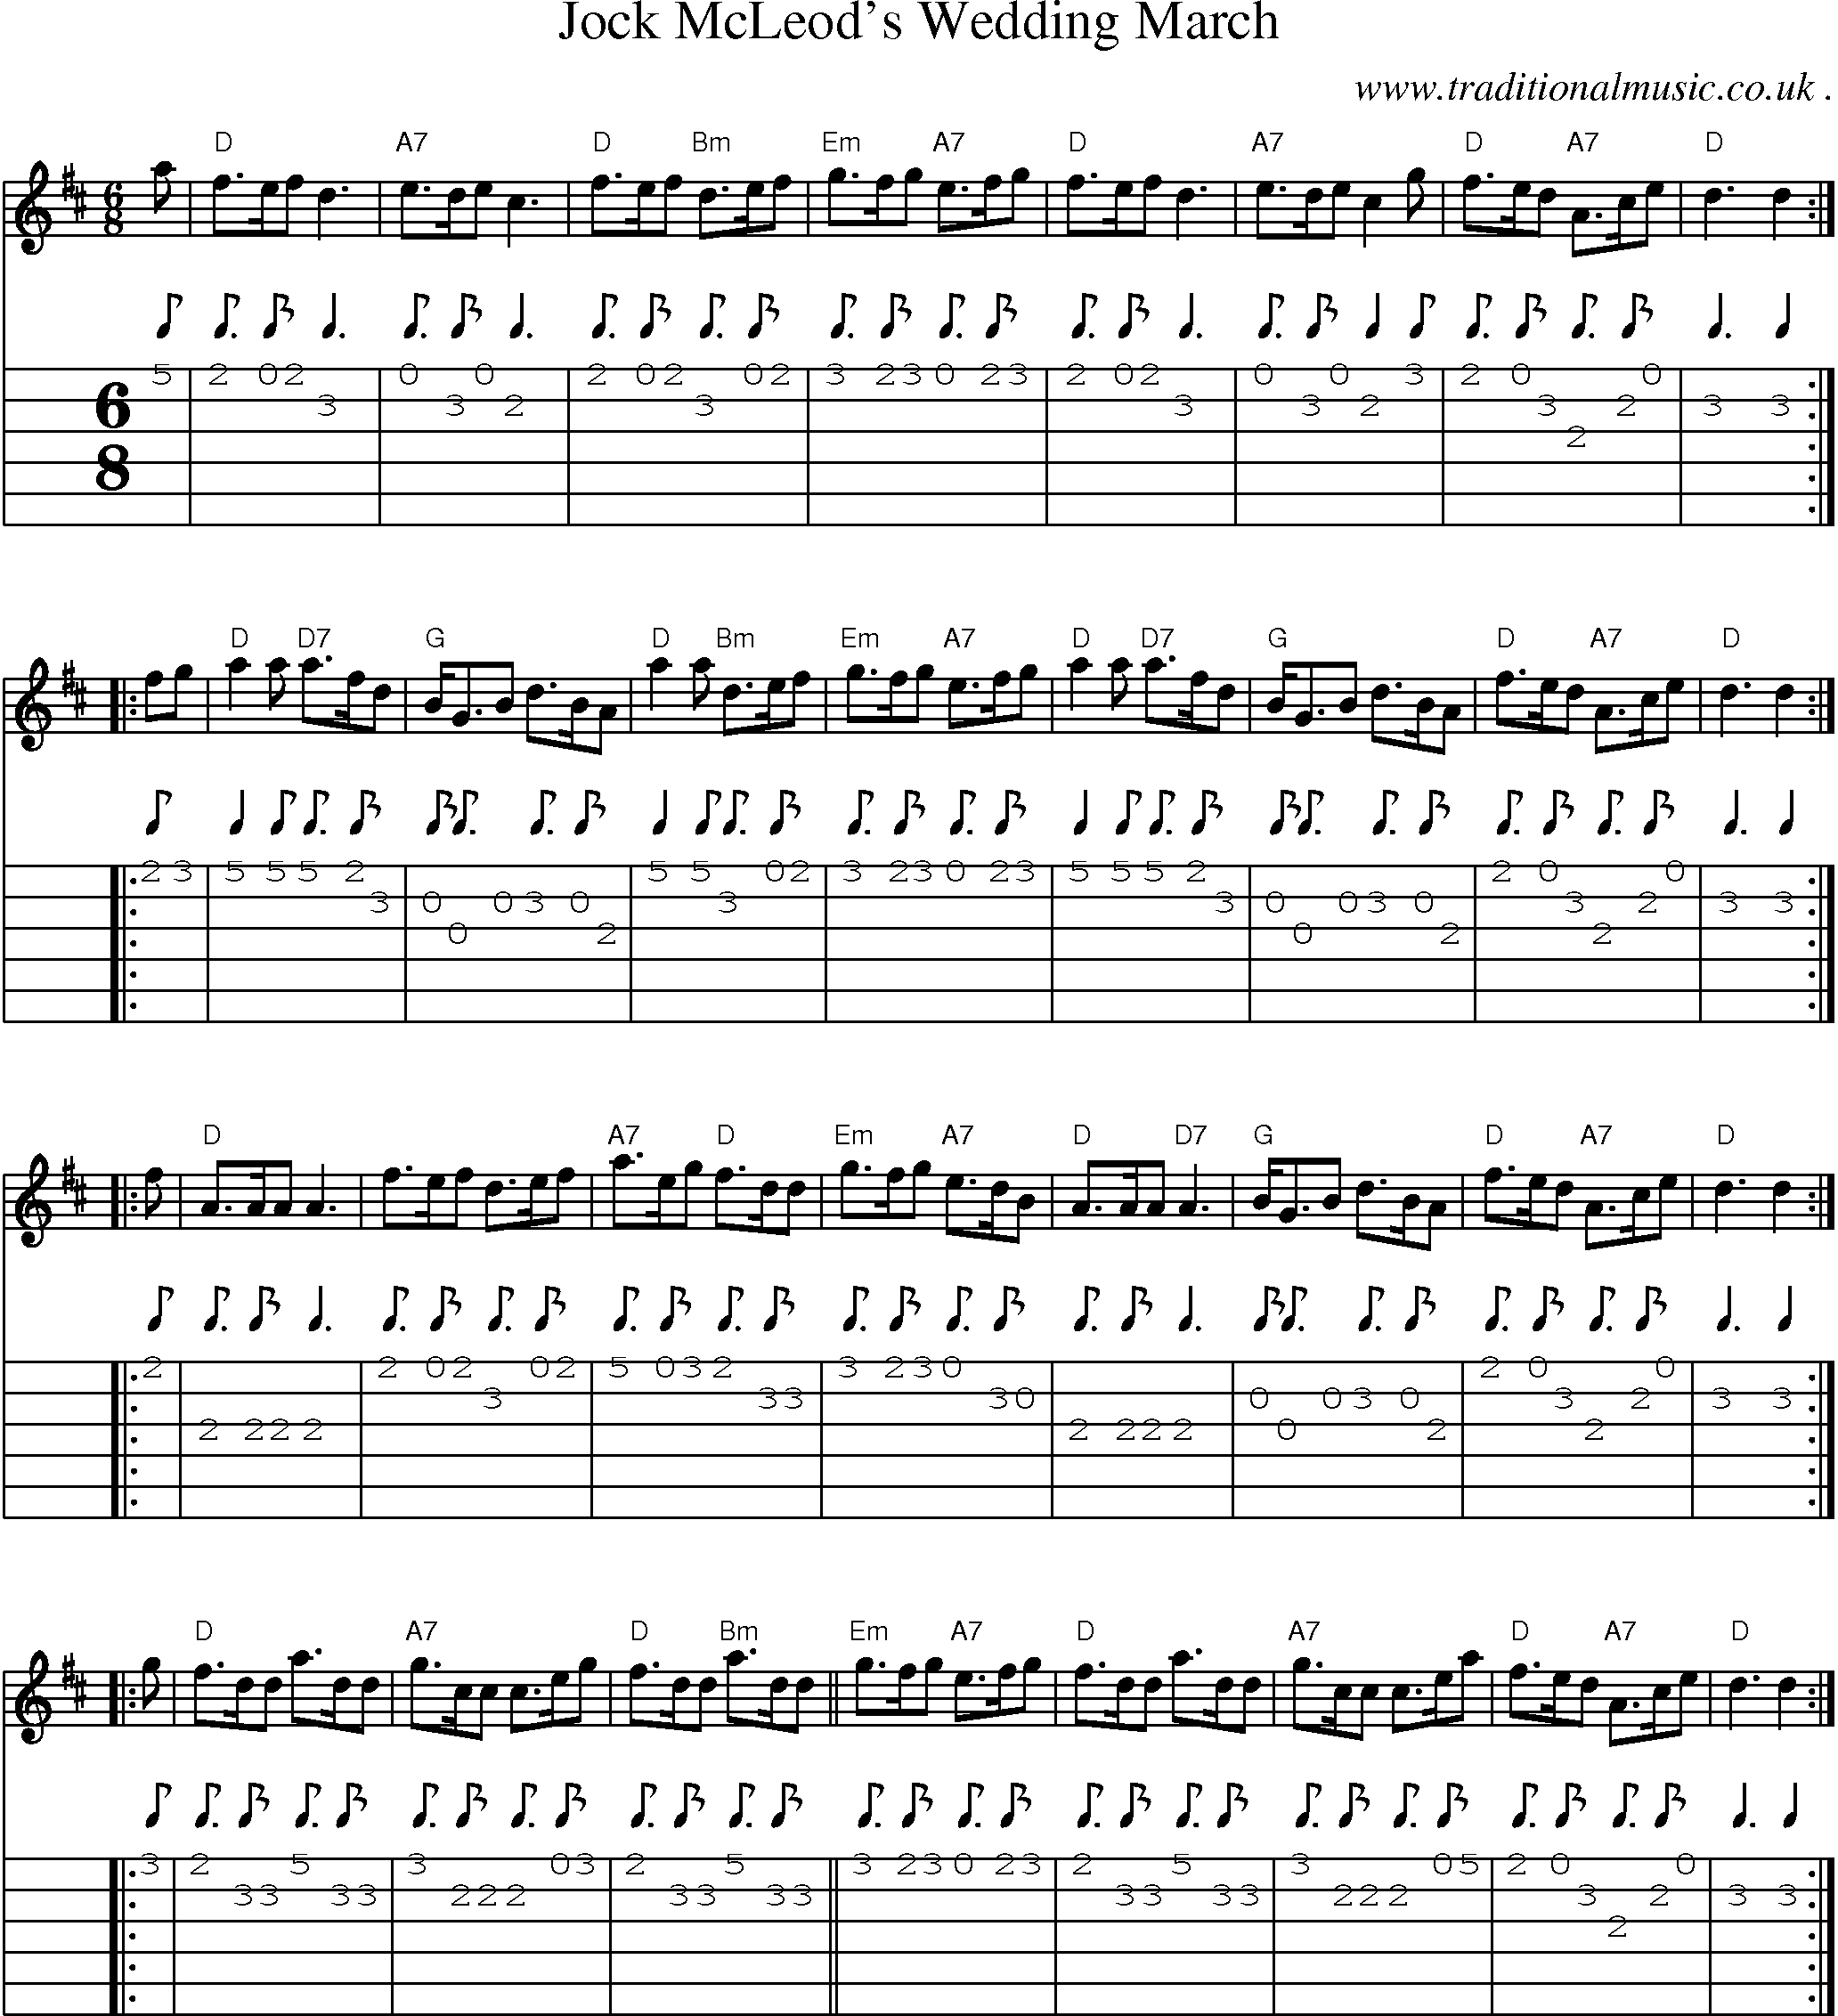 Sheet Music Score Chords And Guitar Tabs For Jock Mcleods Wedding March